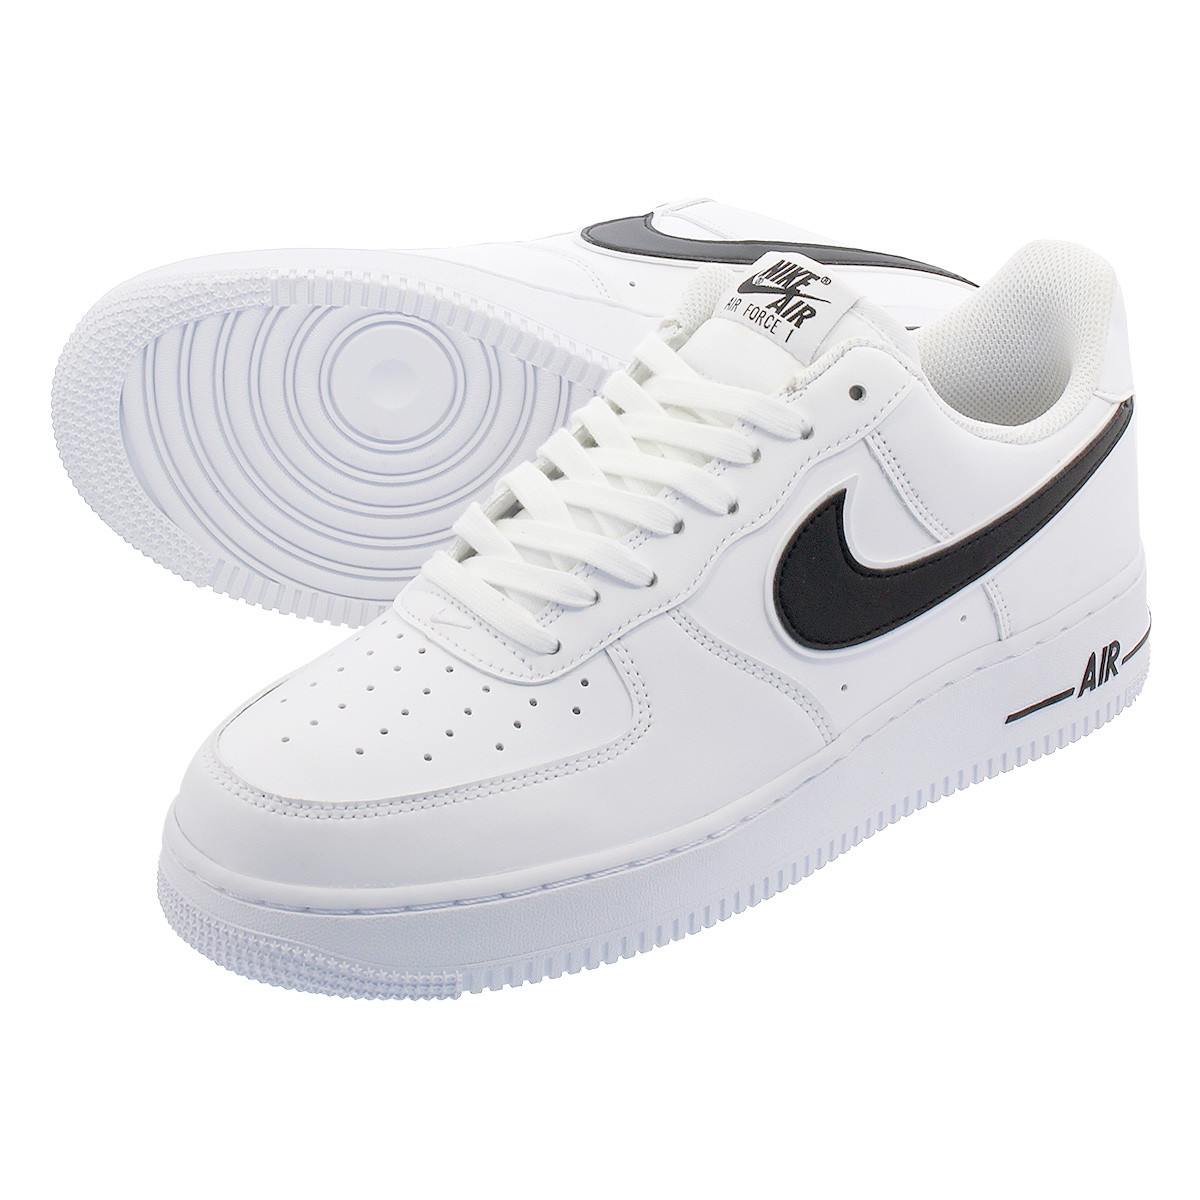 NIKE AIR FORCE 1 '07 ナイキ エア フォース 1 '07 WHITE/BLACK ao2423-101